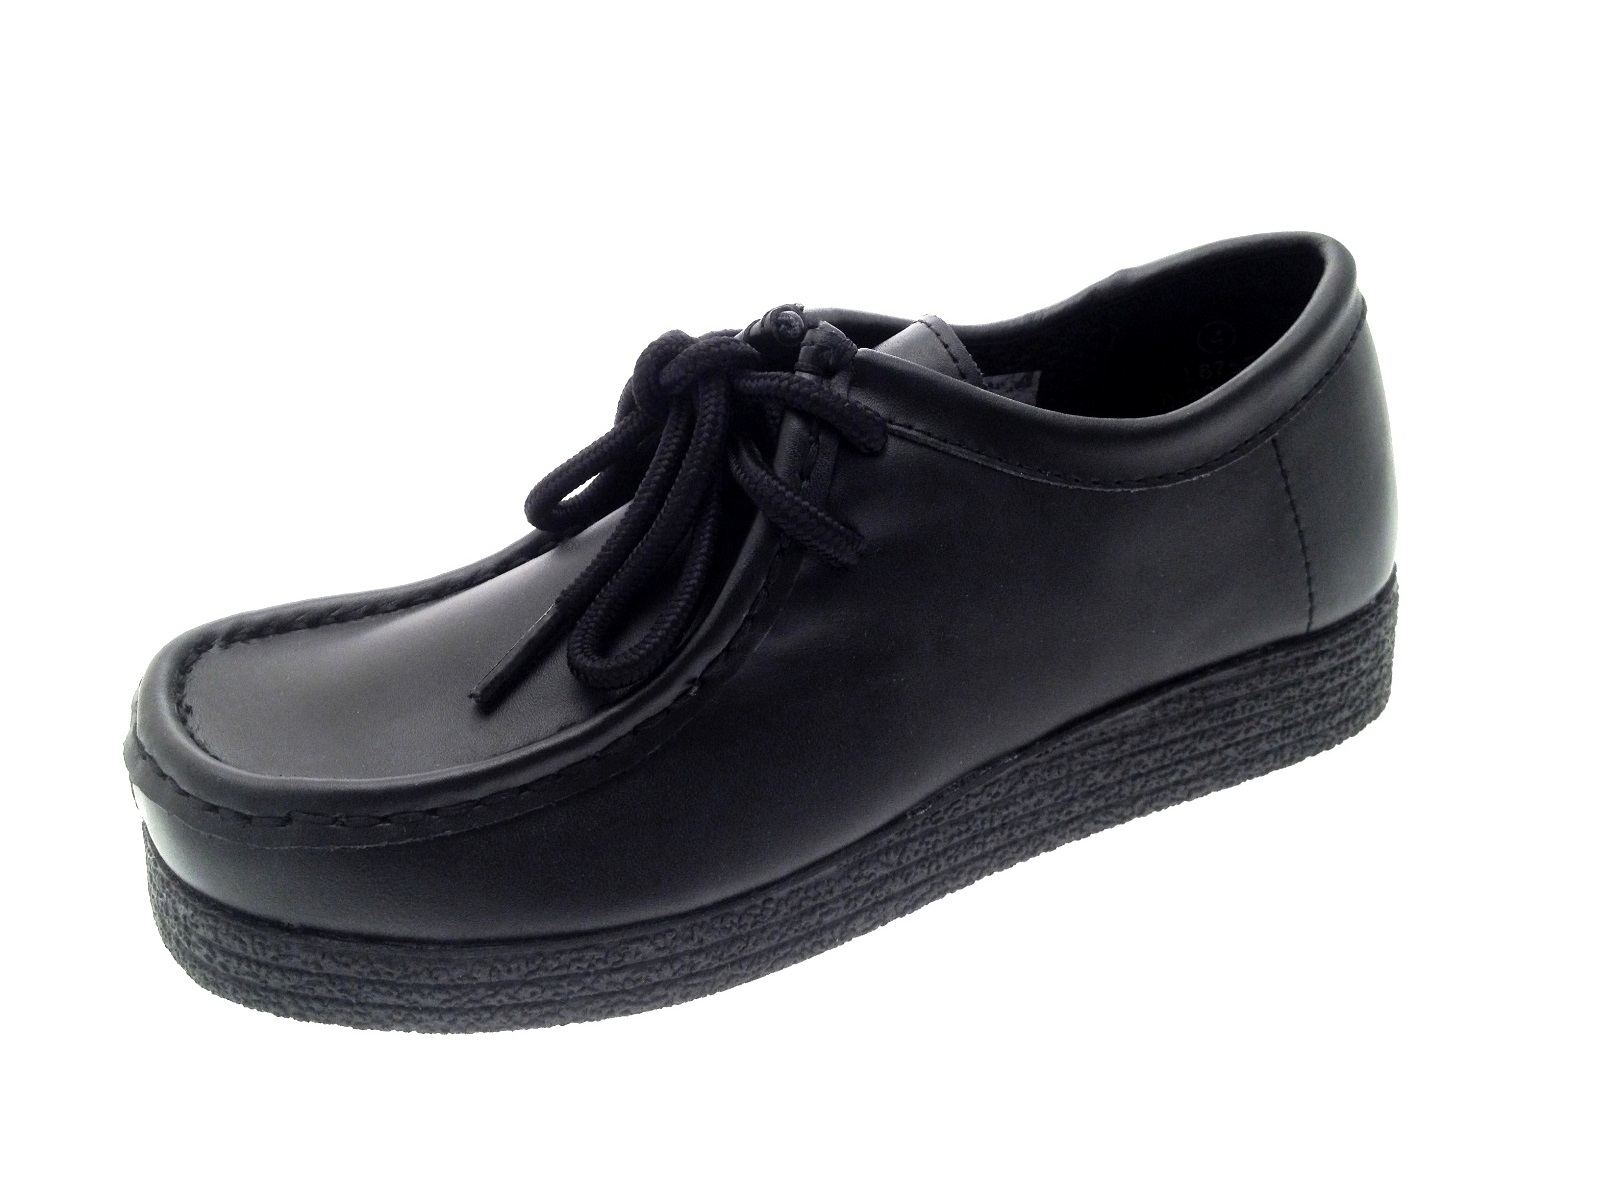 Kangol School Shoes